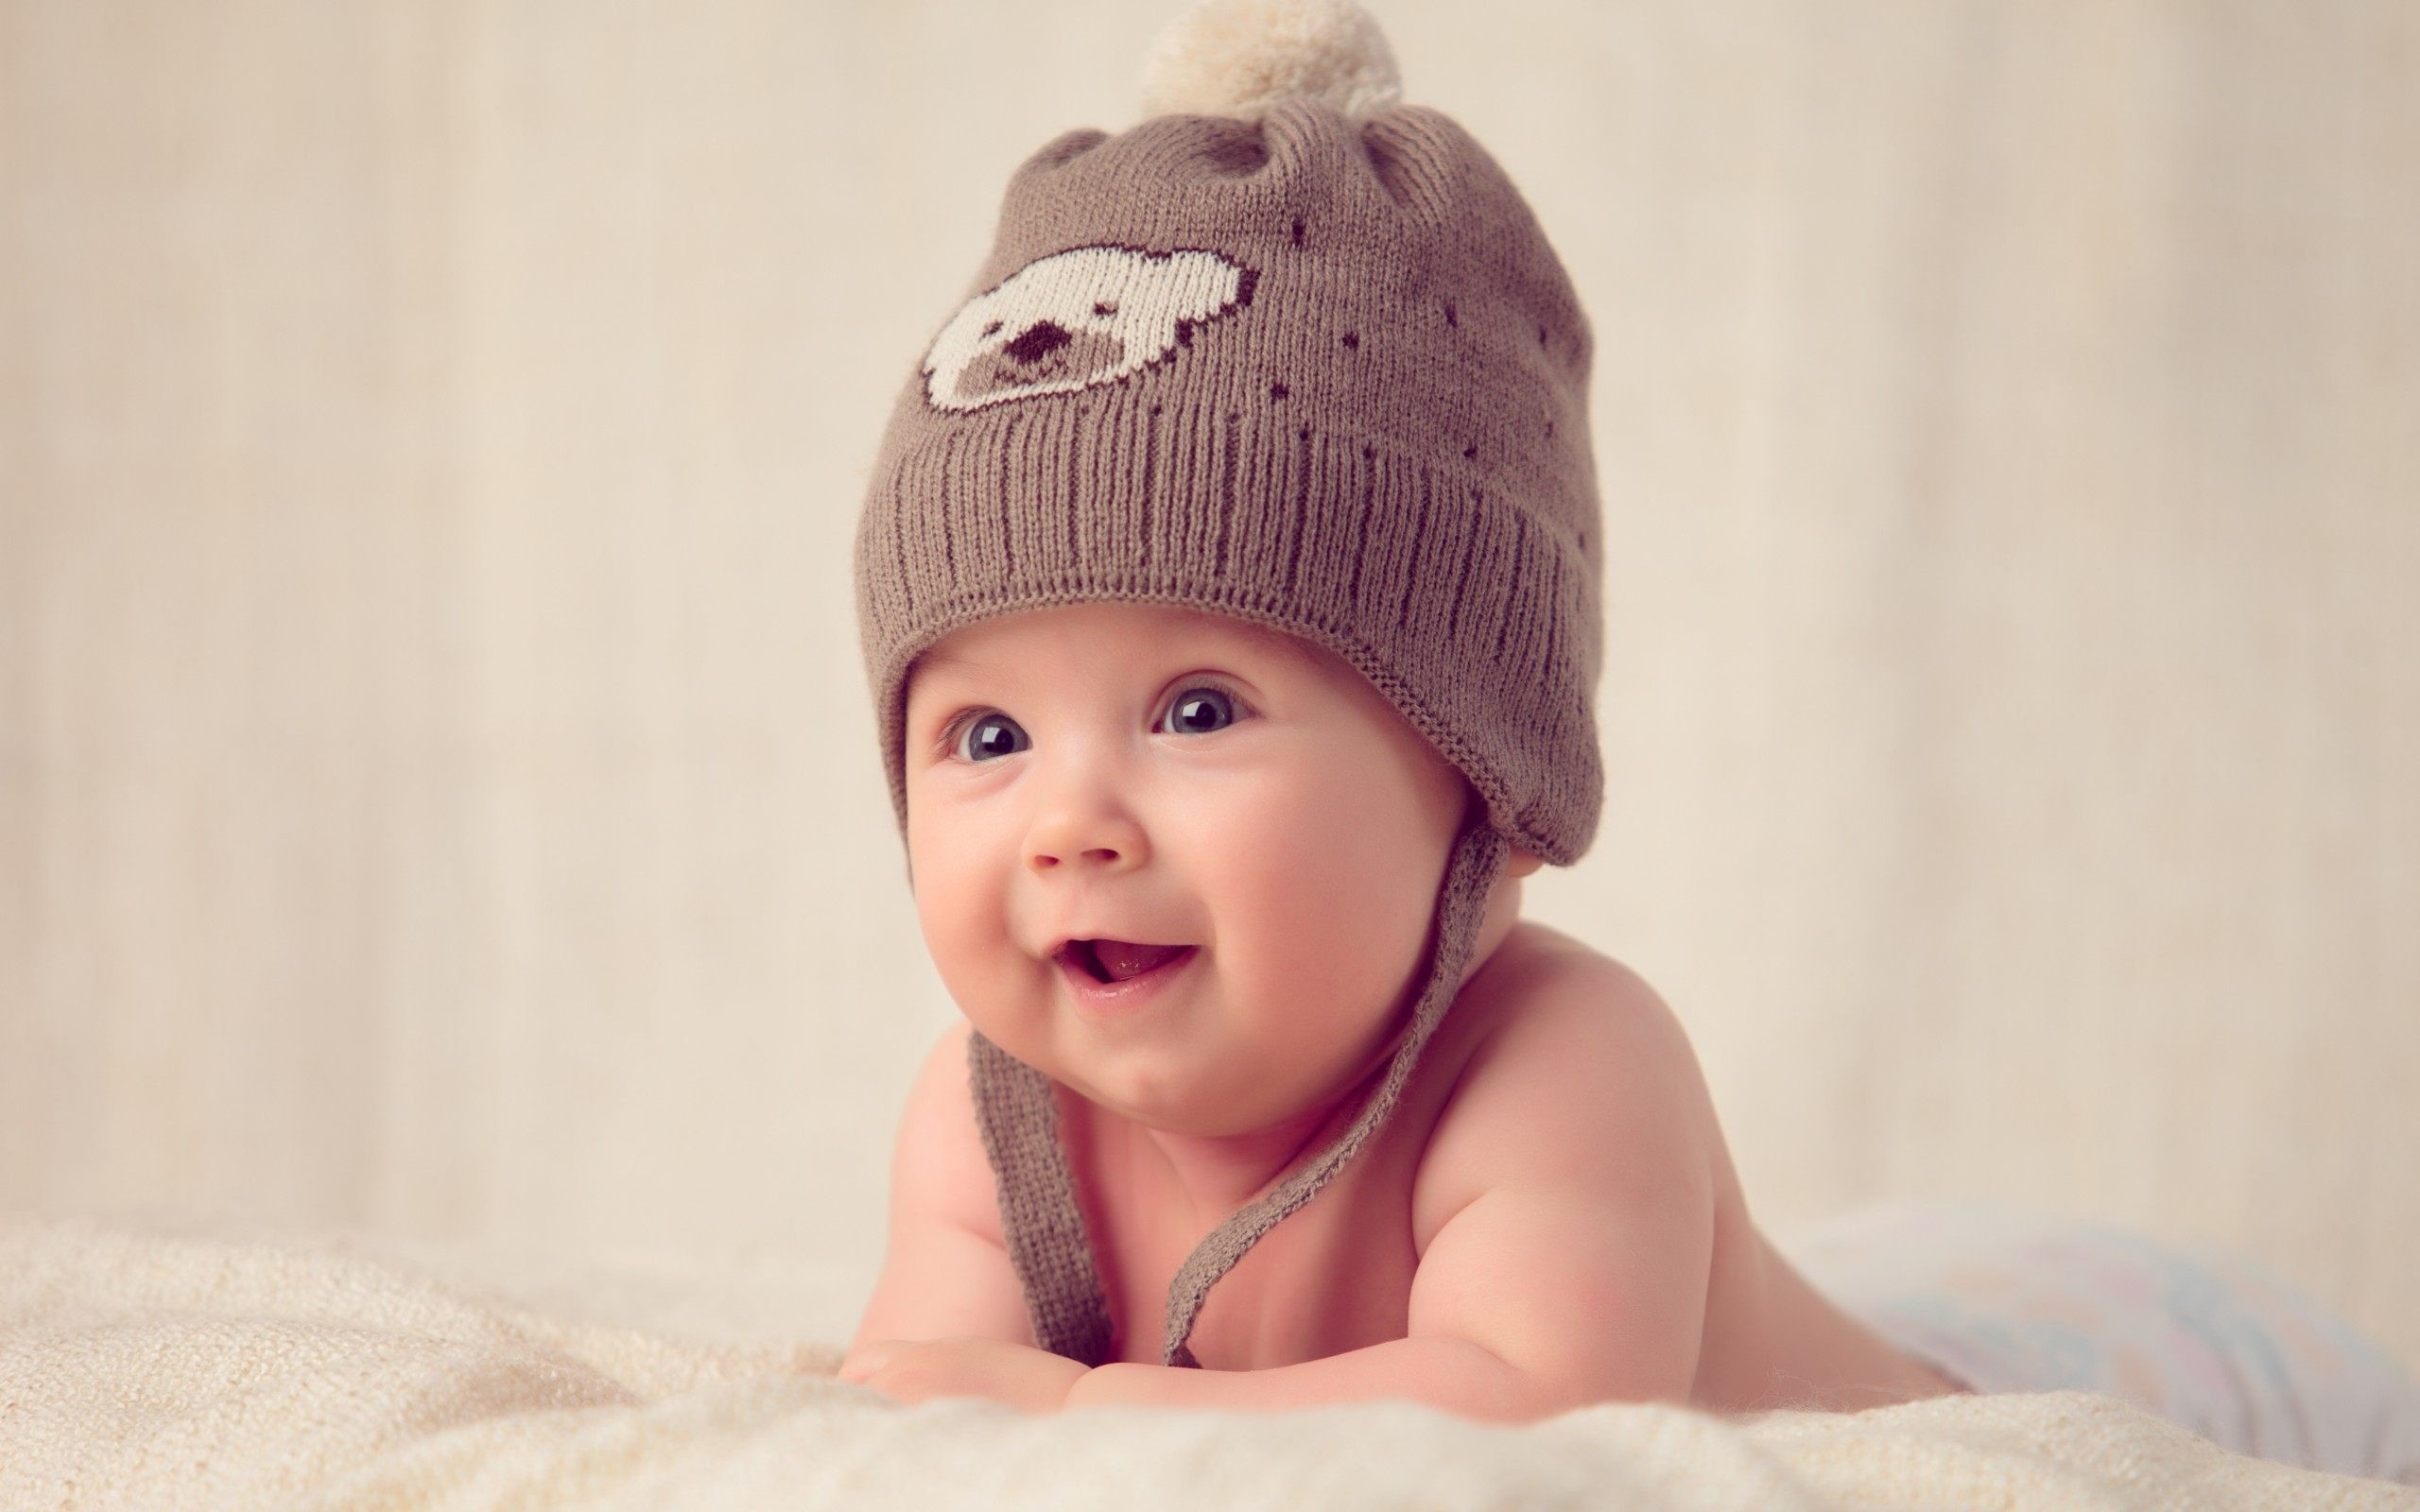 2560x1600 Baby First Smile 4K Wallpaper u0026middot; Happy Baby Wallpaper .